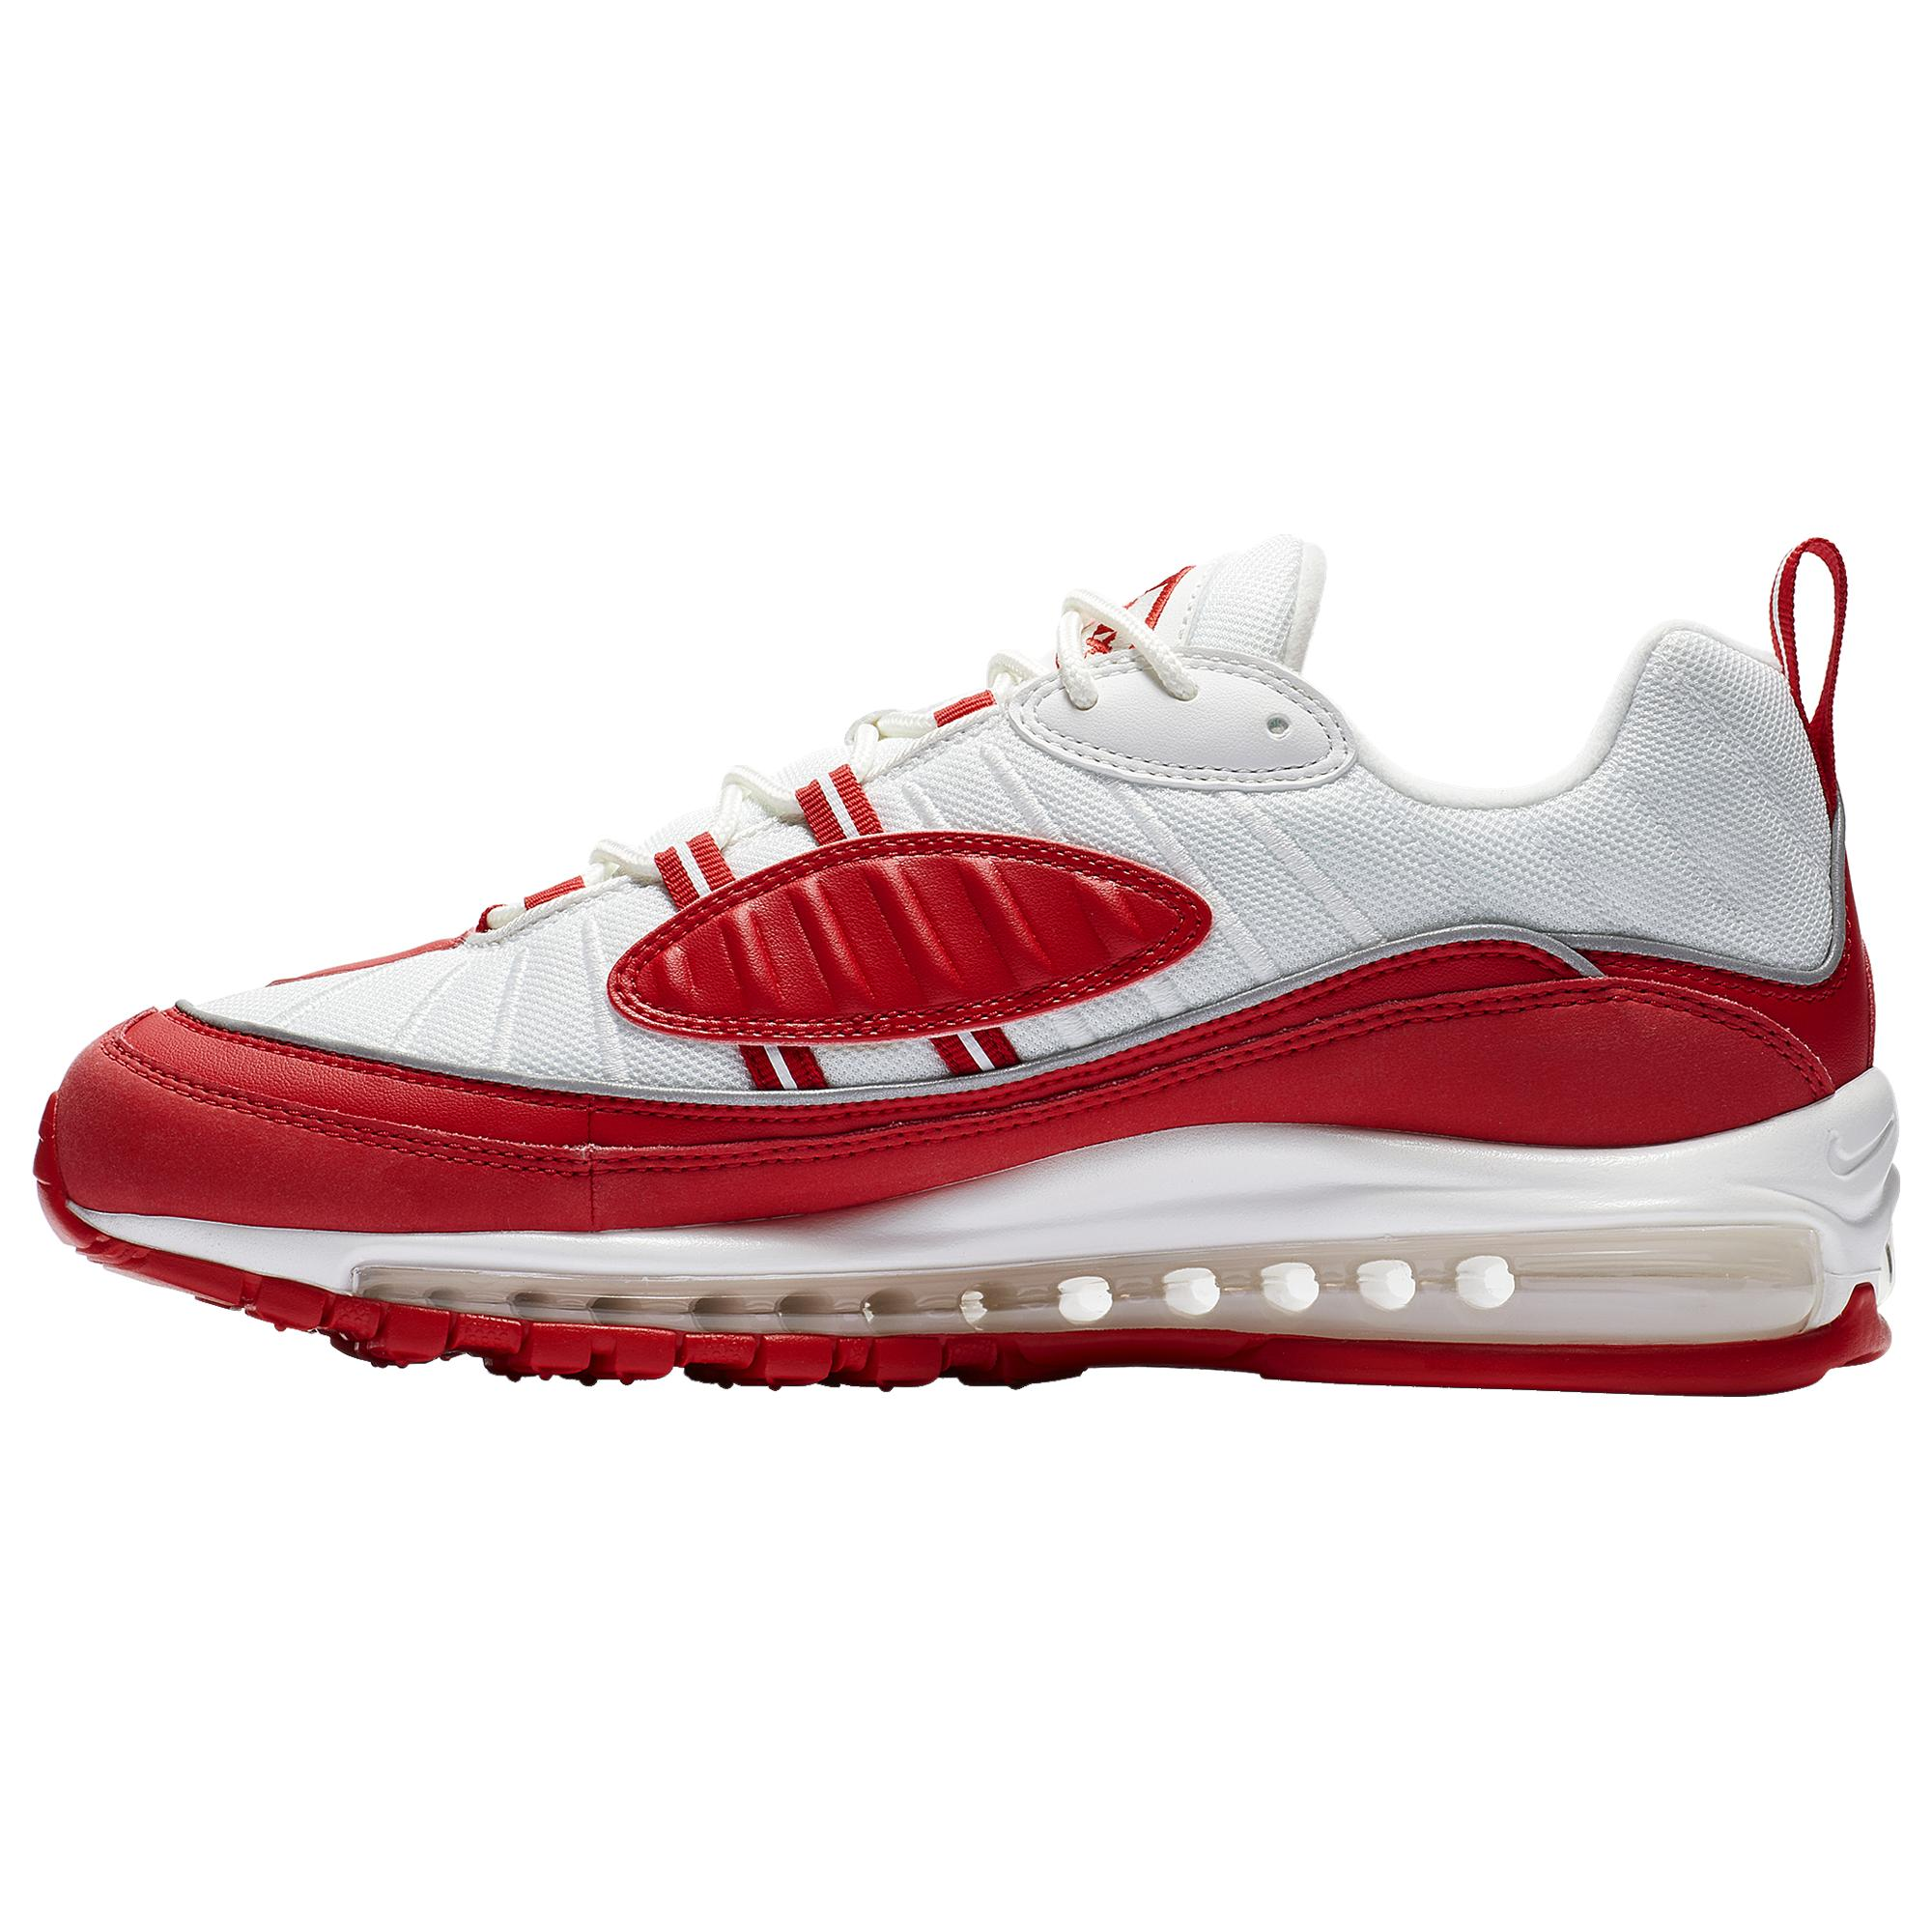 Nike Leather Air Max 98 Low-top sneakers in Red for Men - Save 91 ...